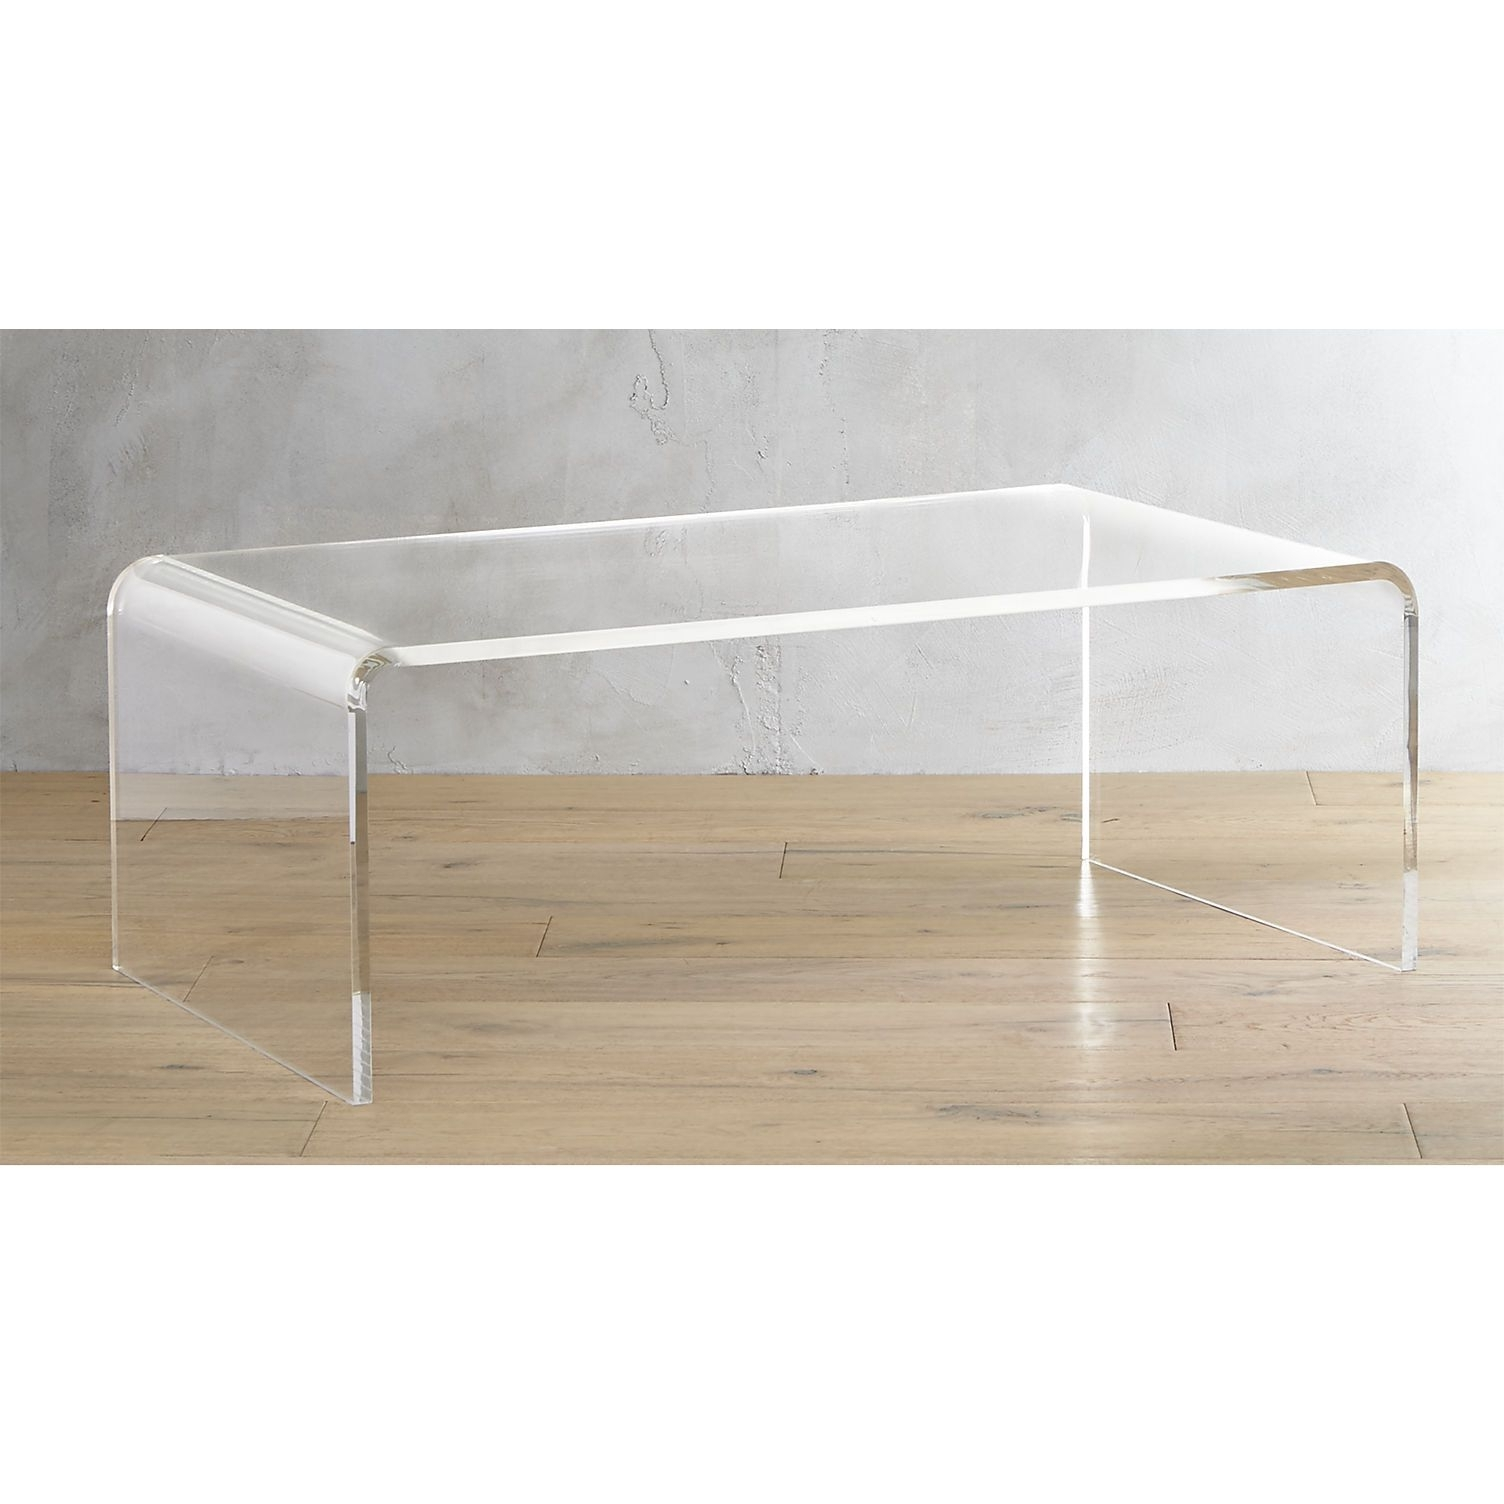 Most Recent Disappearing Coffee Tables In Peekaboo Acrylic Tall Coffee Table (View 15 of 20)